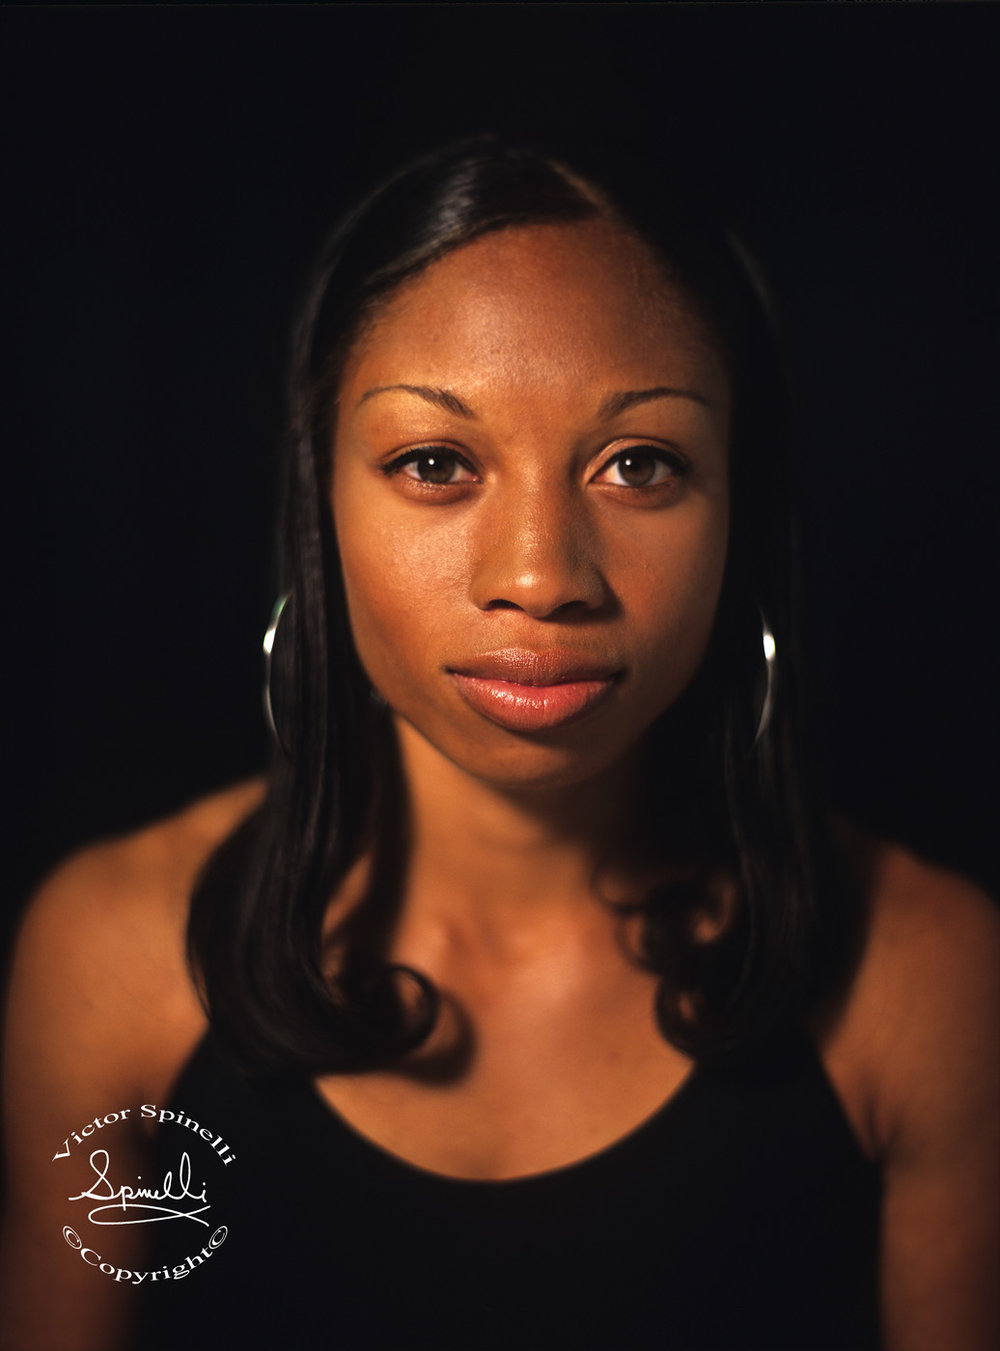 4 time Gold Medal winner Allyson Felix has just made her 4th USA Olympic team and she is on her way to Rio de Janeiro for the XXXI Olympiad which opens on August 5th 2016. 400 Meters to go for another GOLD! Image shot with a Contax 645. ©Victor Spinelli Archive